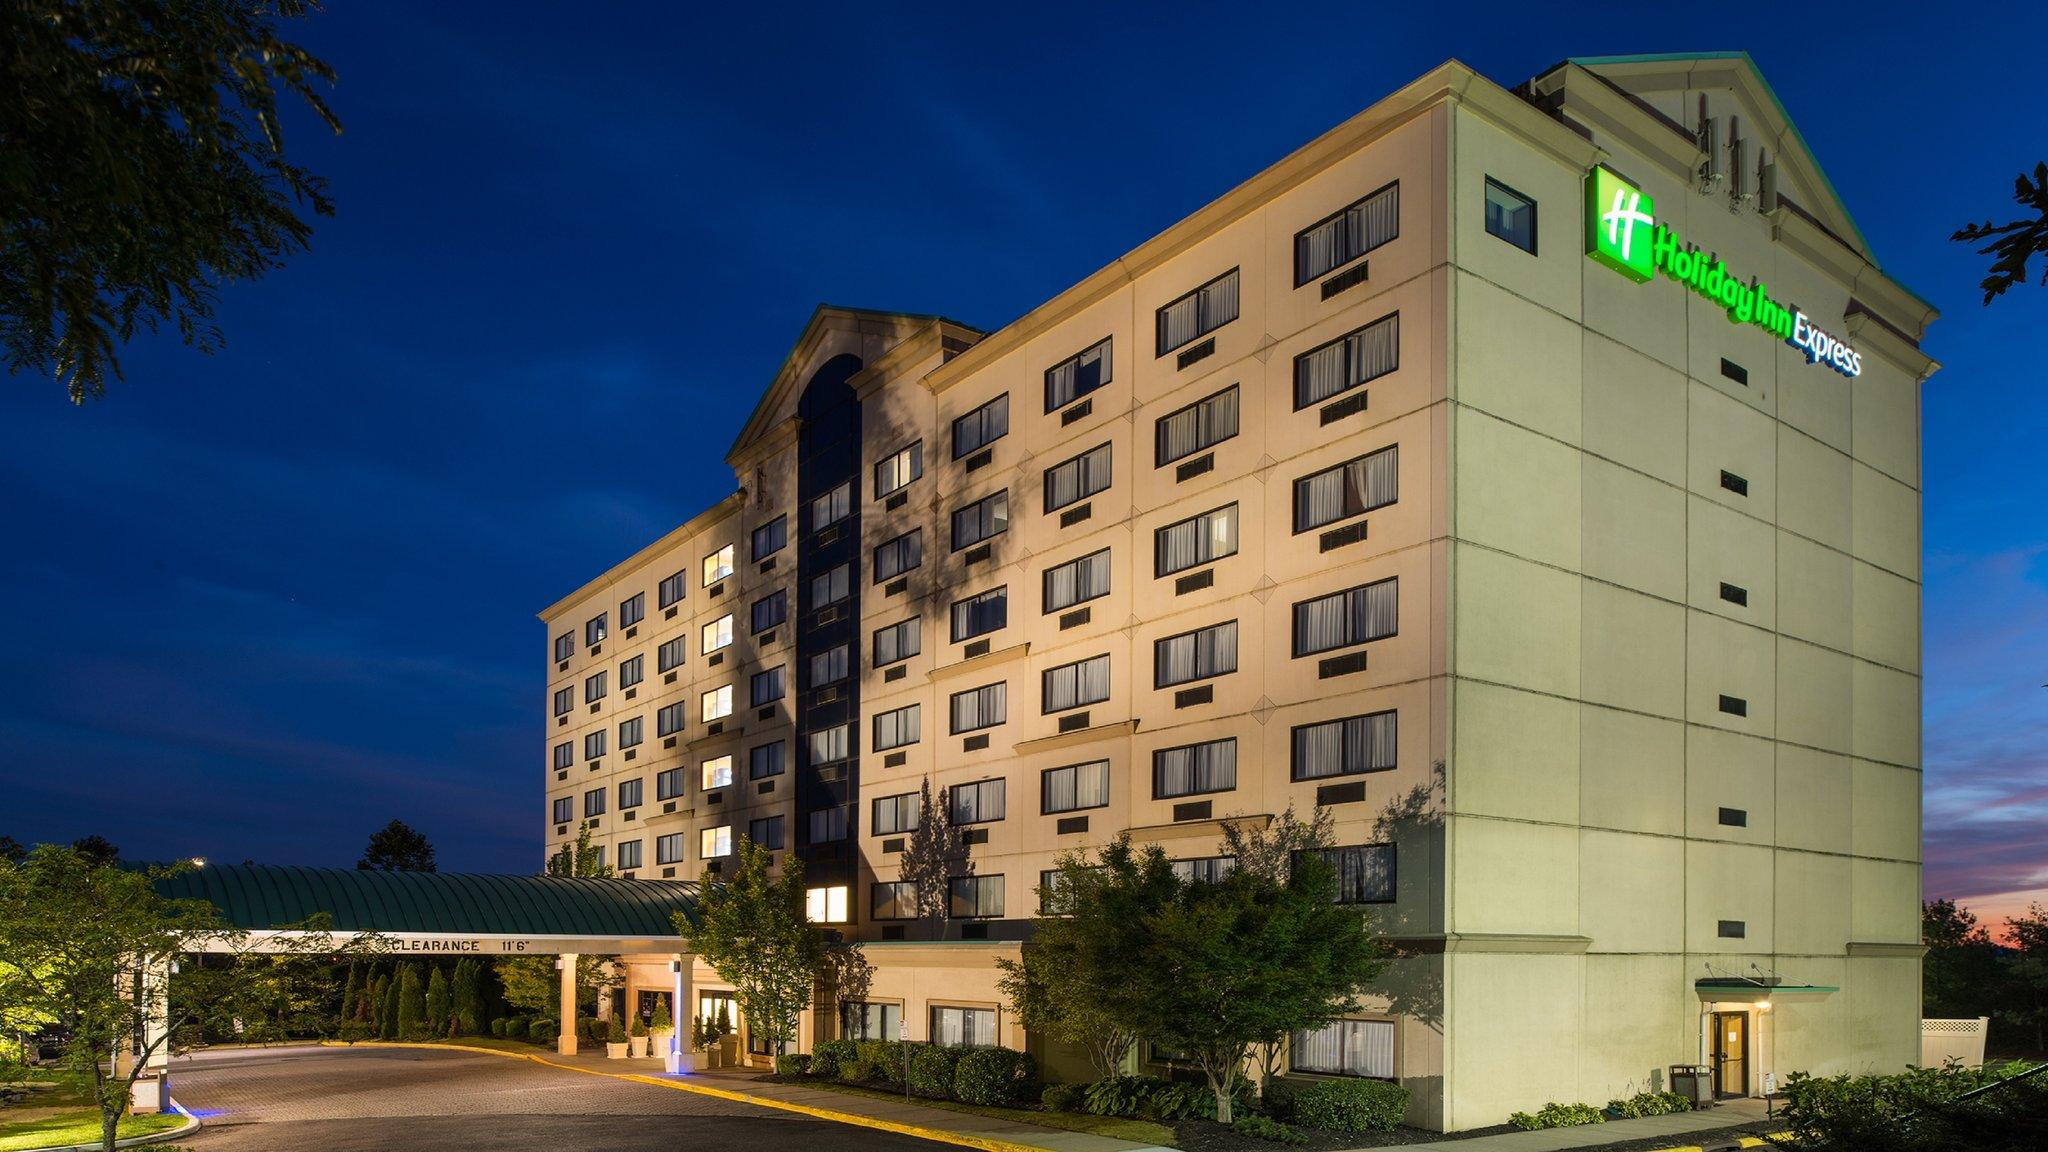 Holiday Inn Express Hauppauge